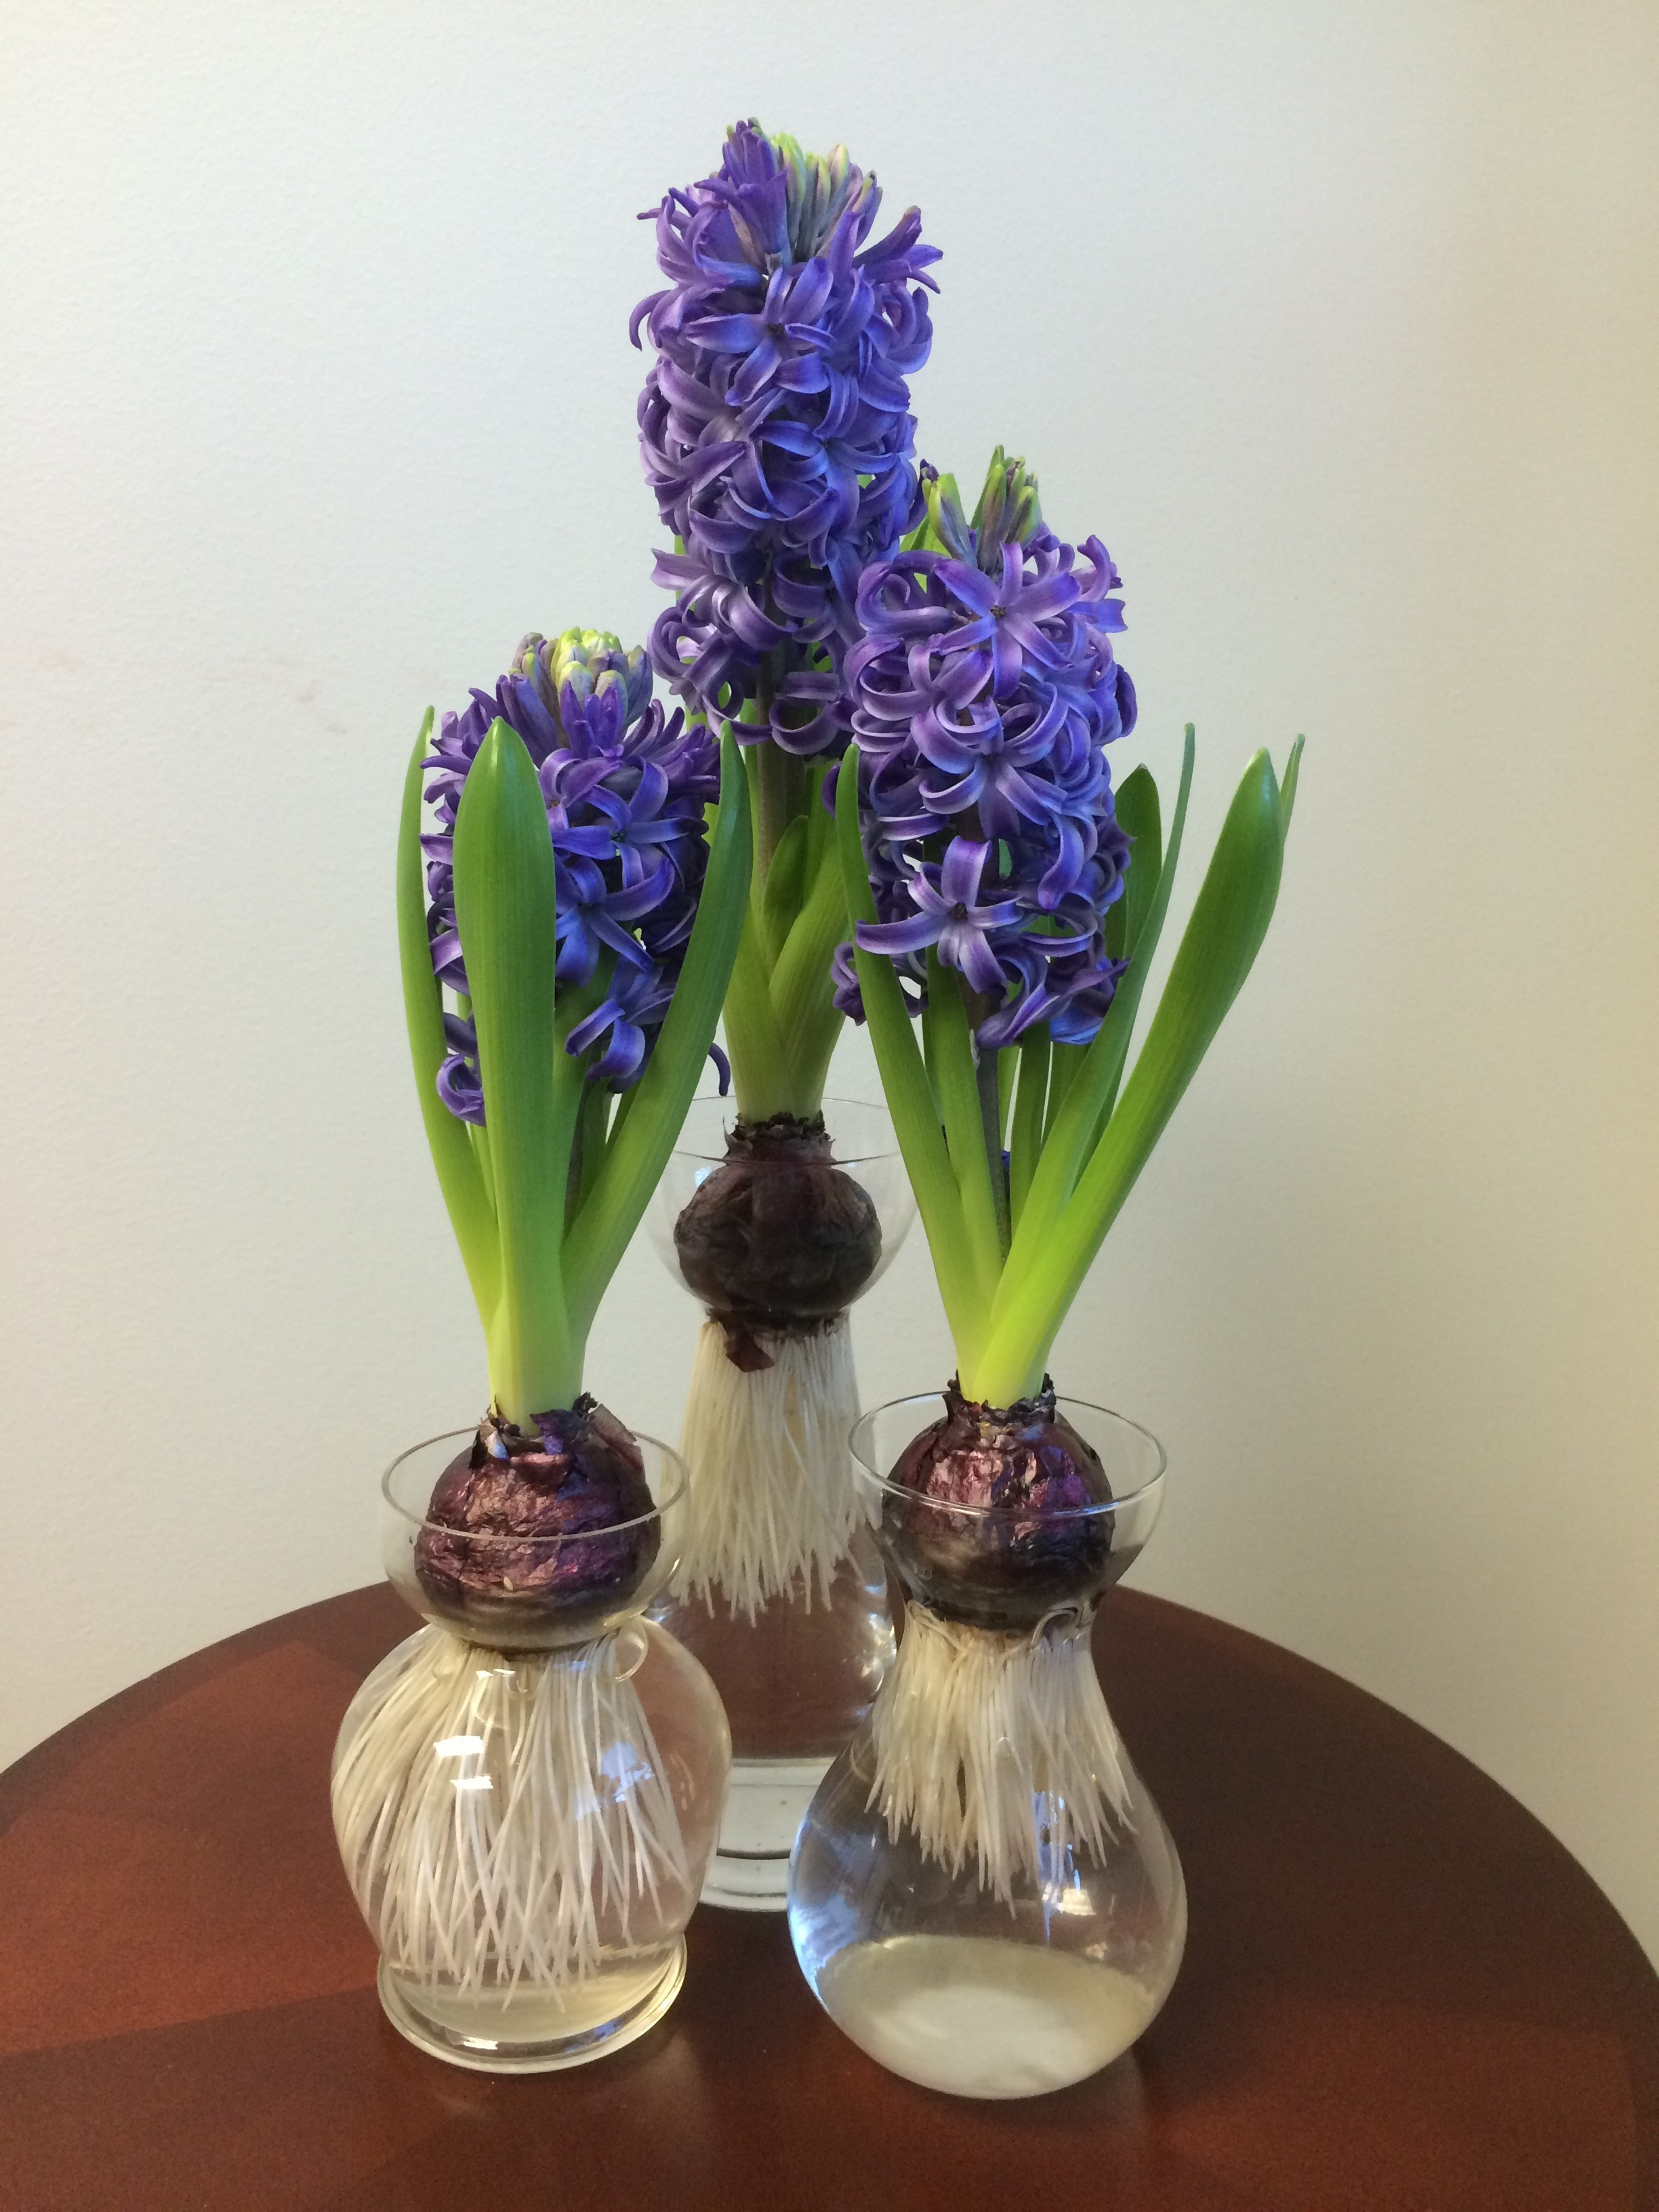 Hyacinth forcing Vase Of forcing Hyacinths Archives Pegplant Regarding Hyacinth Blue Pearl In forcing Vases